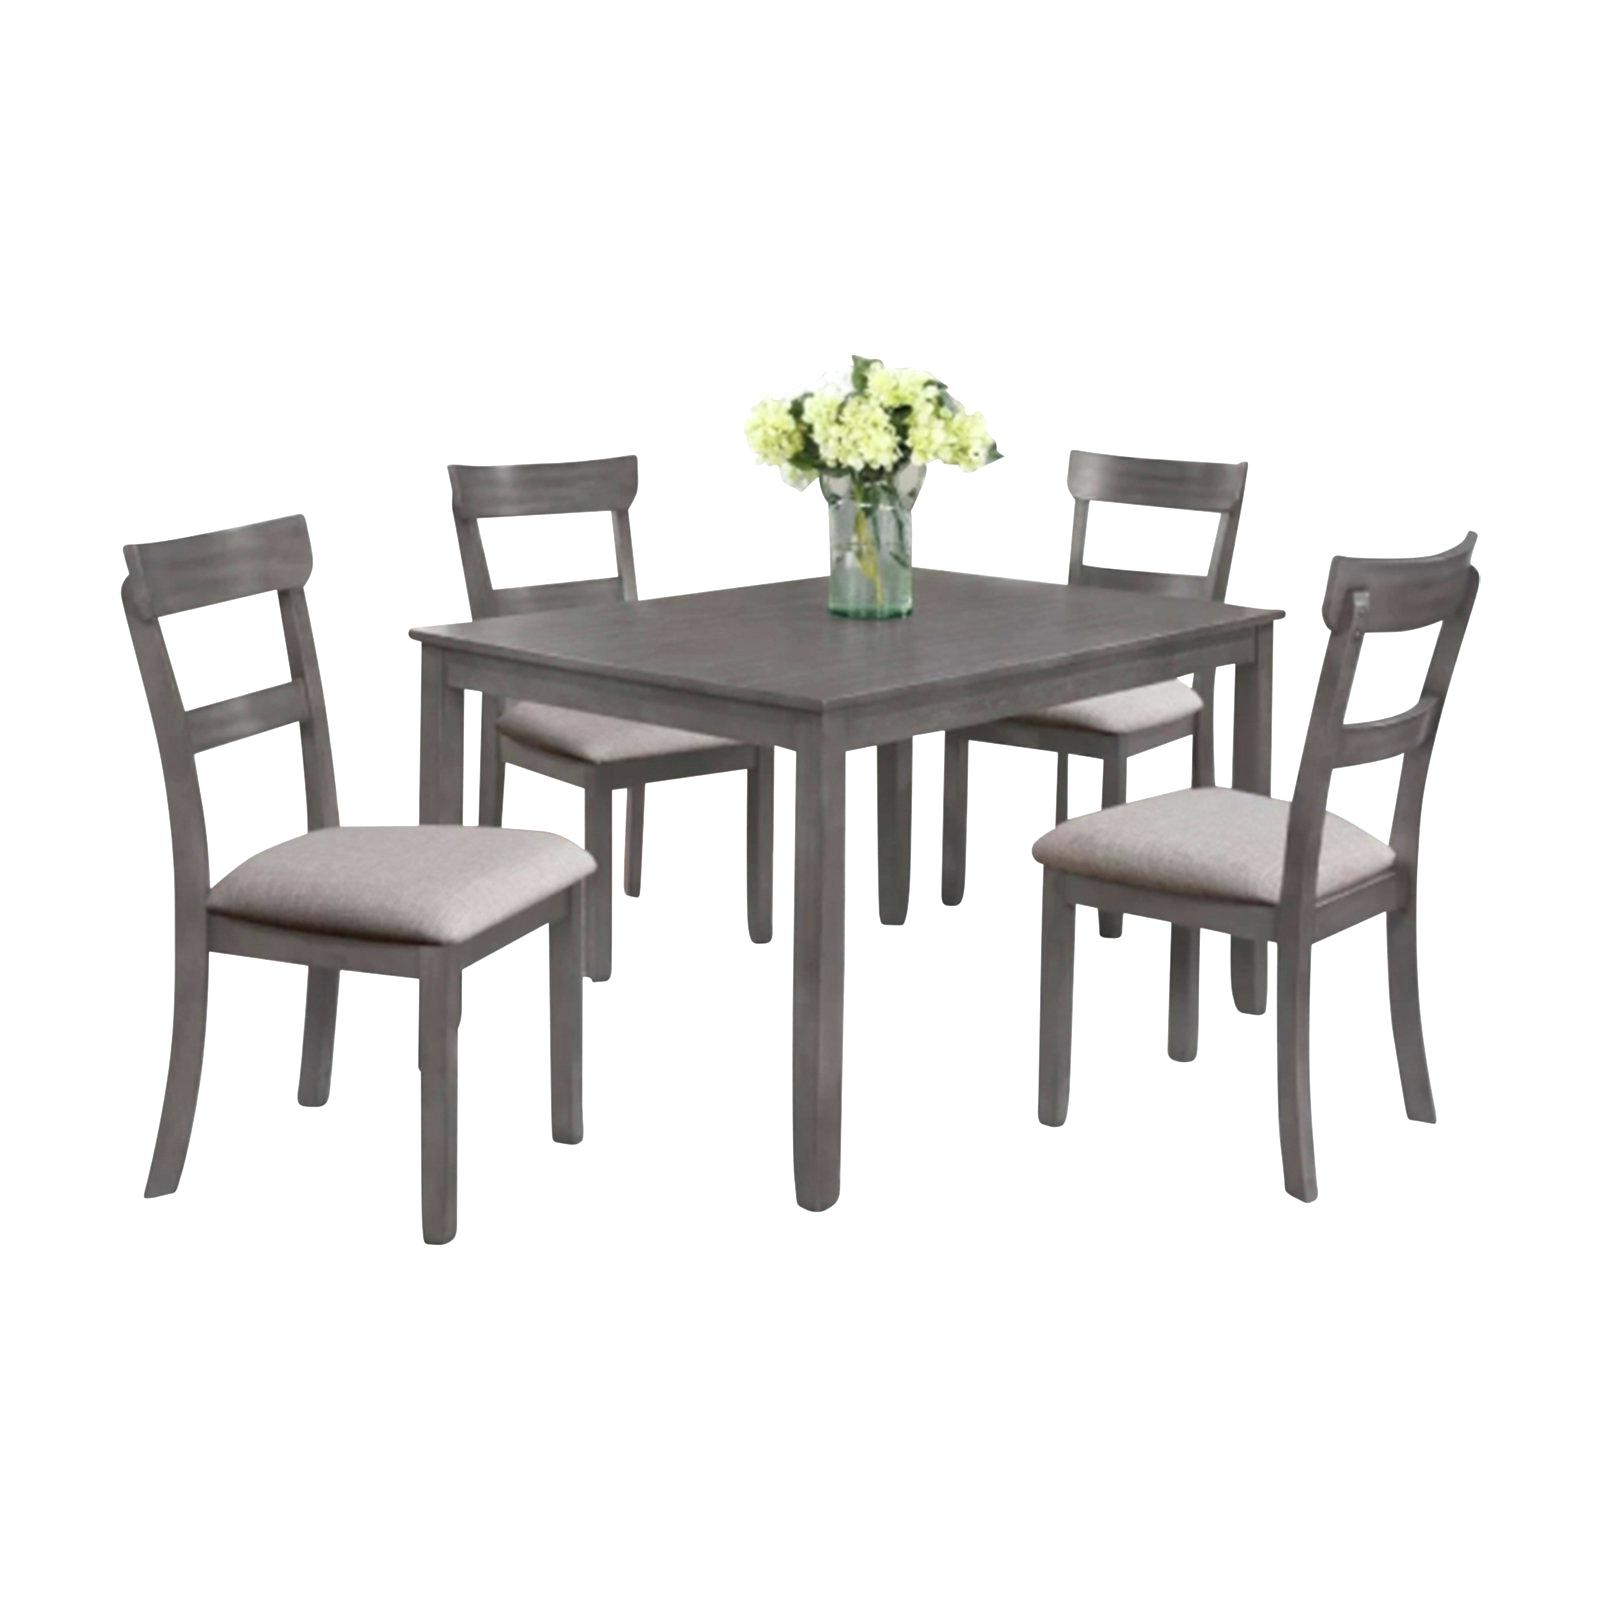 2020 Gray Wash Banks Extending Dining Tables regarding White And Gray Dining Table – Insidestories